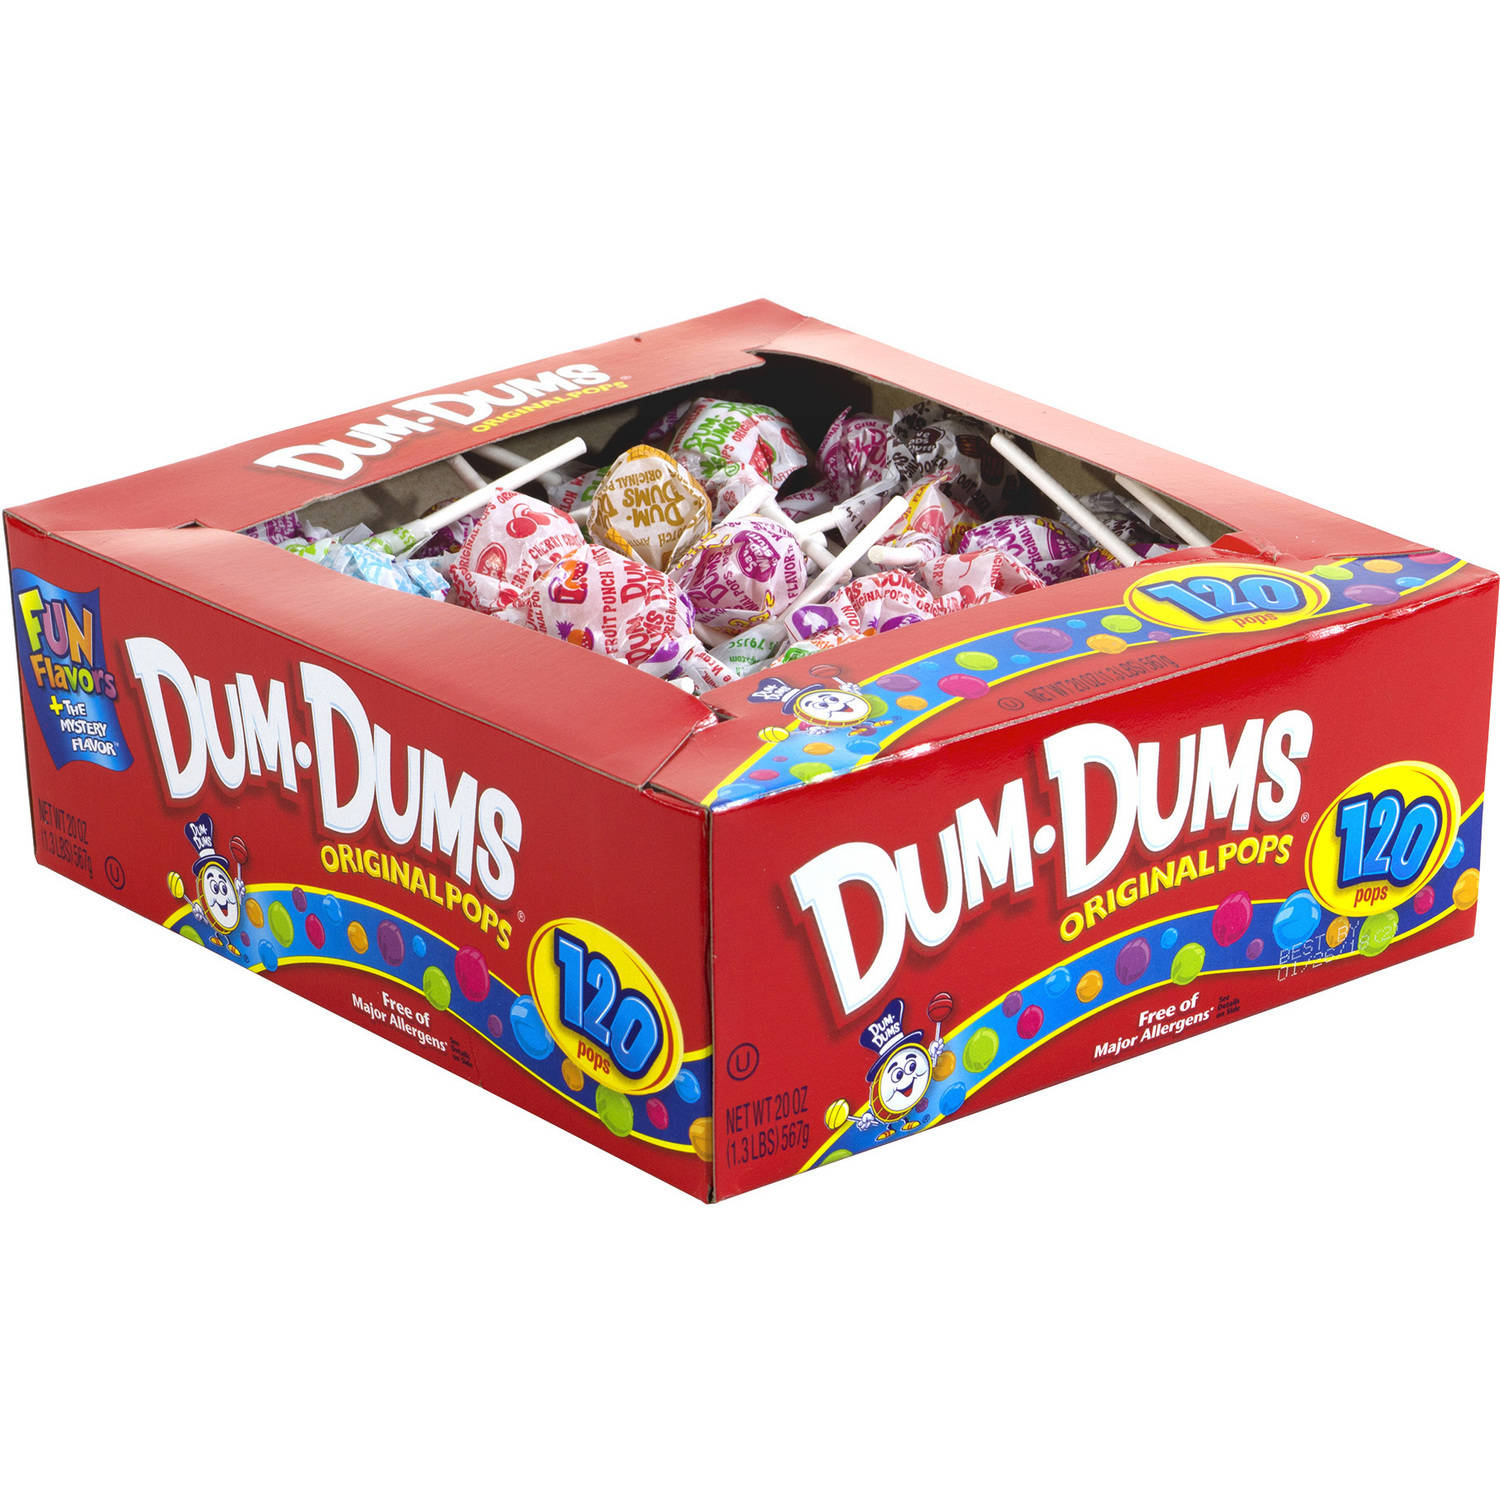 Dum Dums Original Pops Lollipops, 120 count, 20 oz by